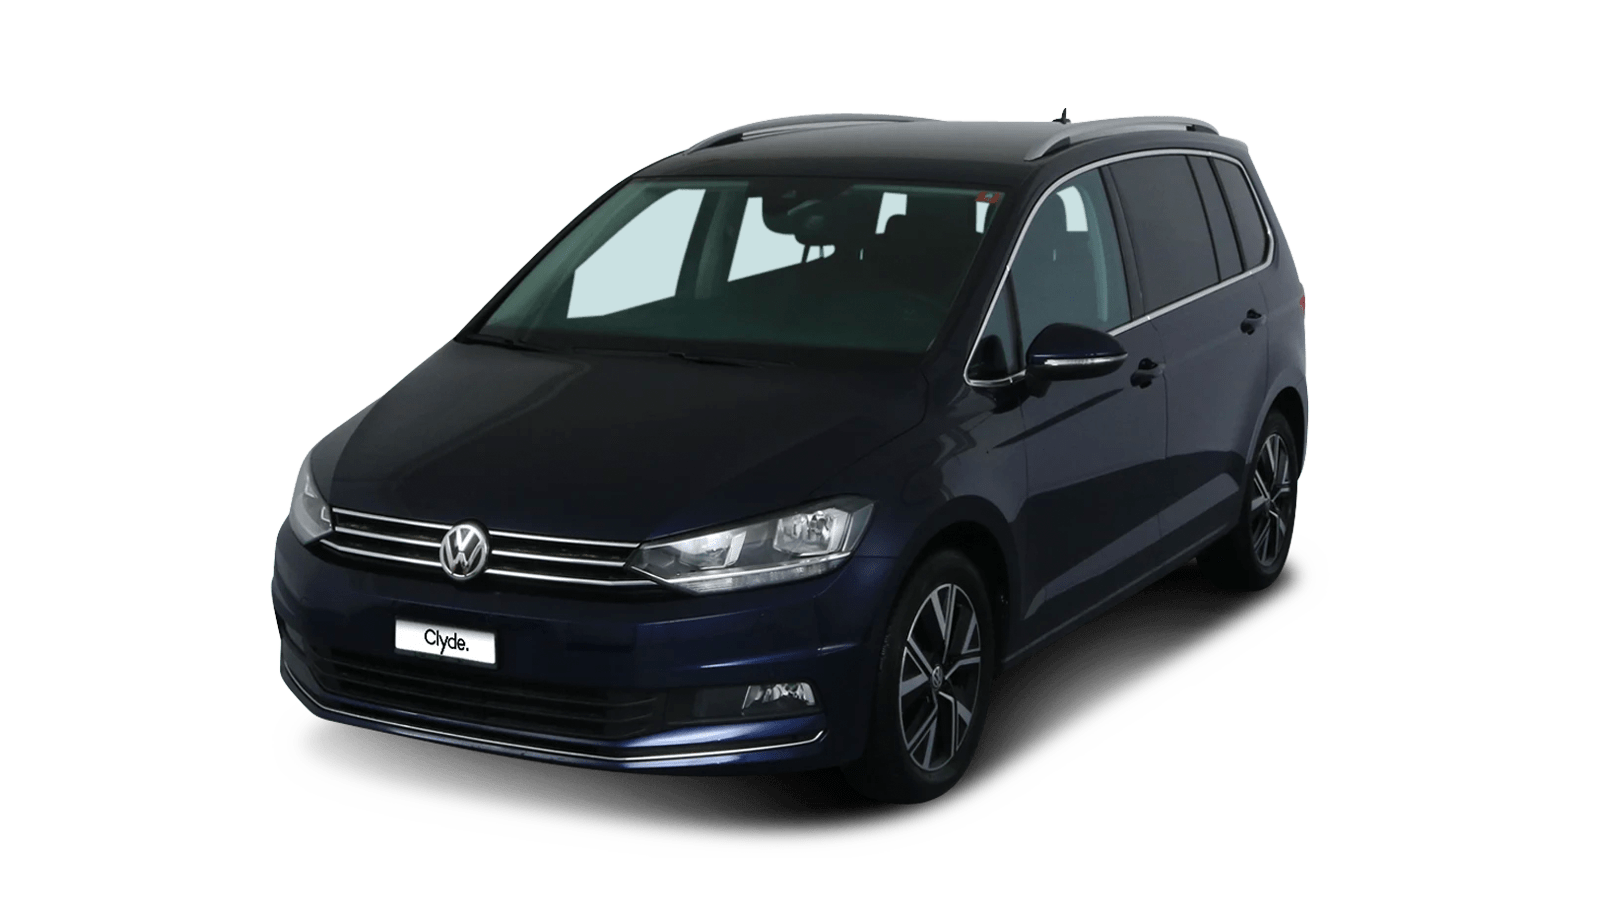 VW Touran Blue front - Clyde car subscription